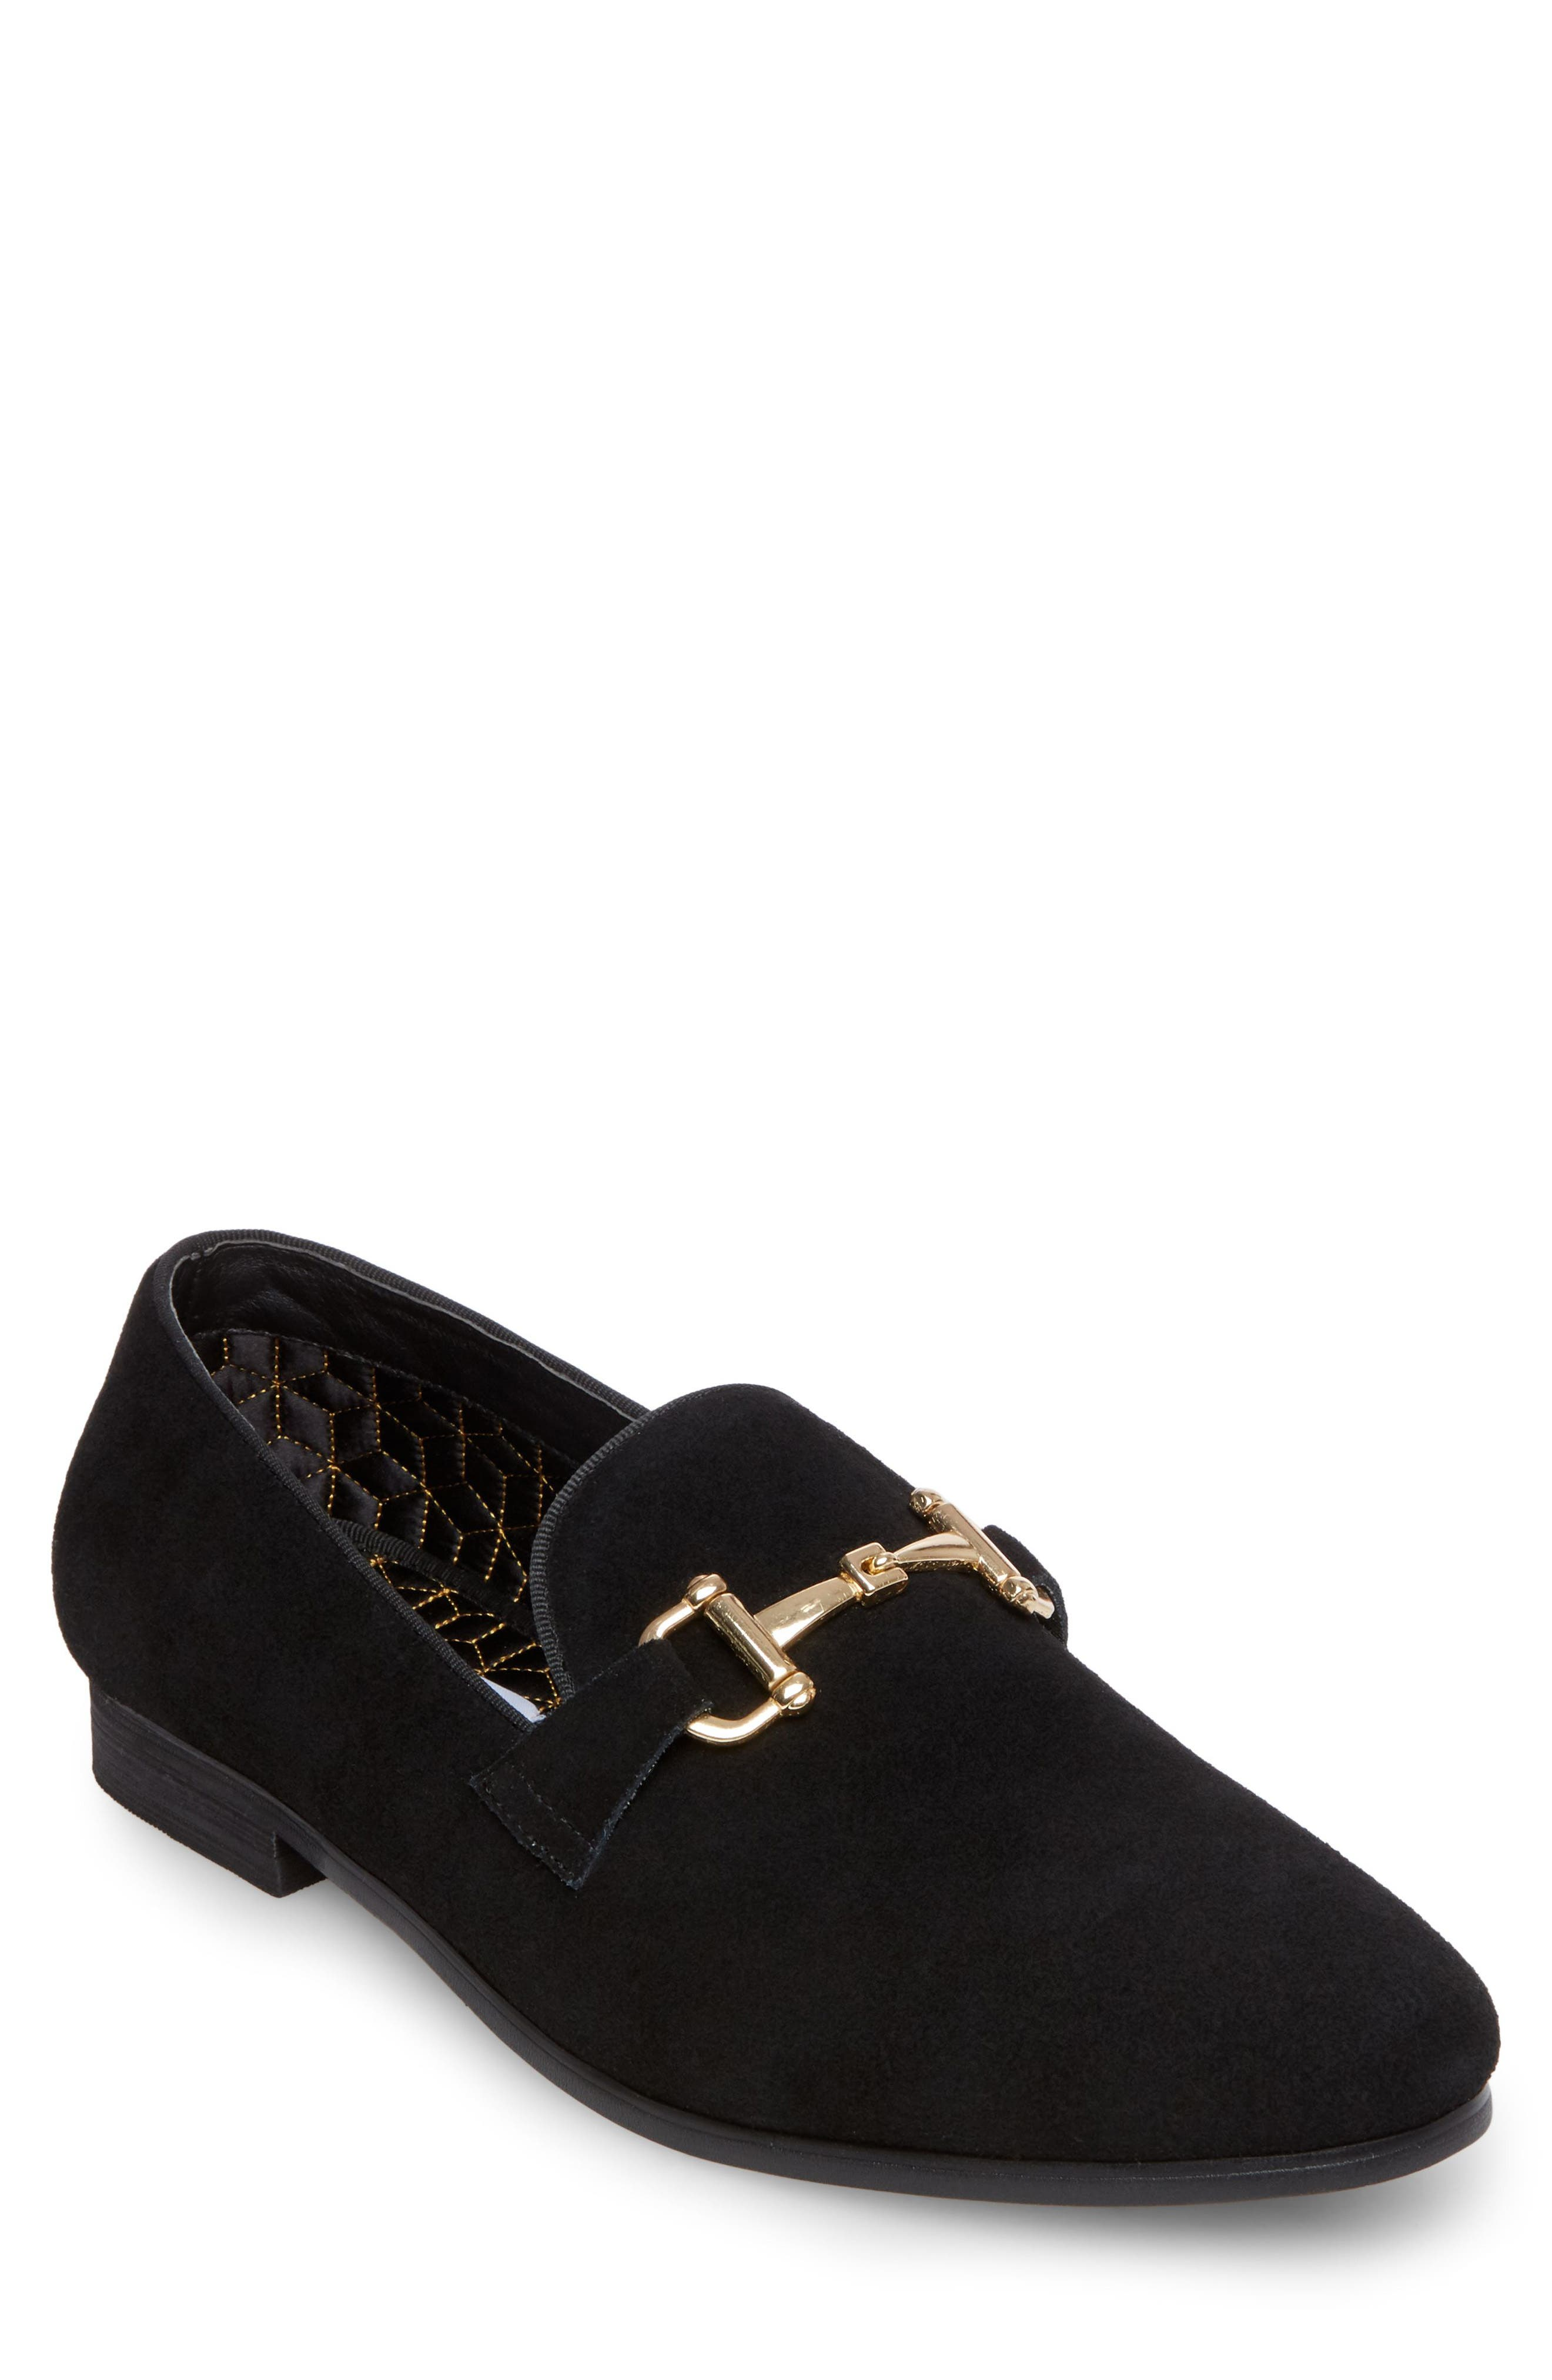 Coinage Bit Loafer,                         Main,                         color, 006